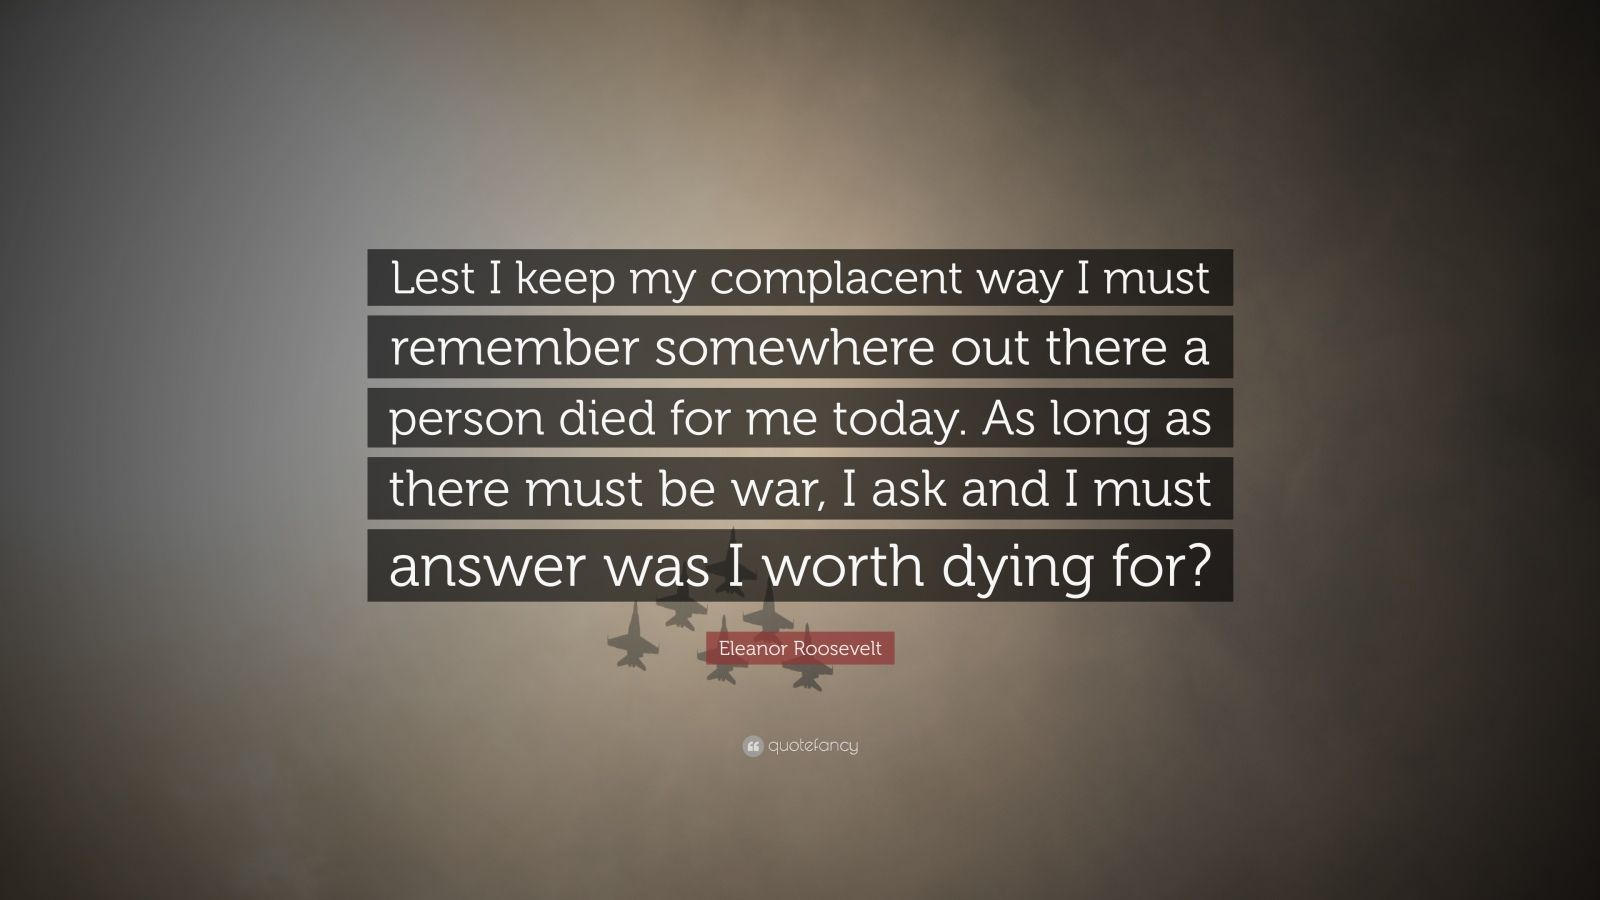 "Eleanor Roosevelt Quote: ""Lest I keep my complacent way I must remember somewhere out there a person died for me today. As long as there must be war, I ask and I must answer was I worth dying for?"""